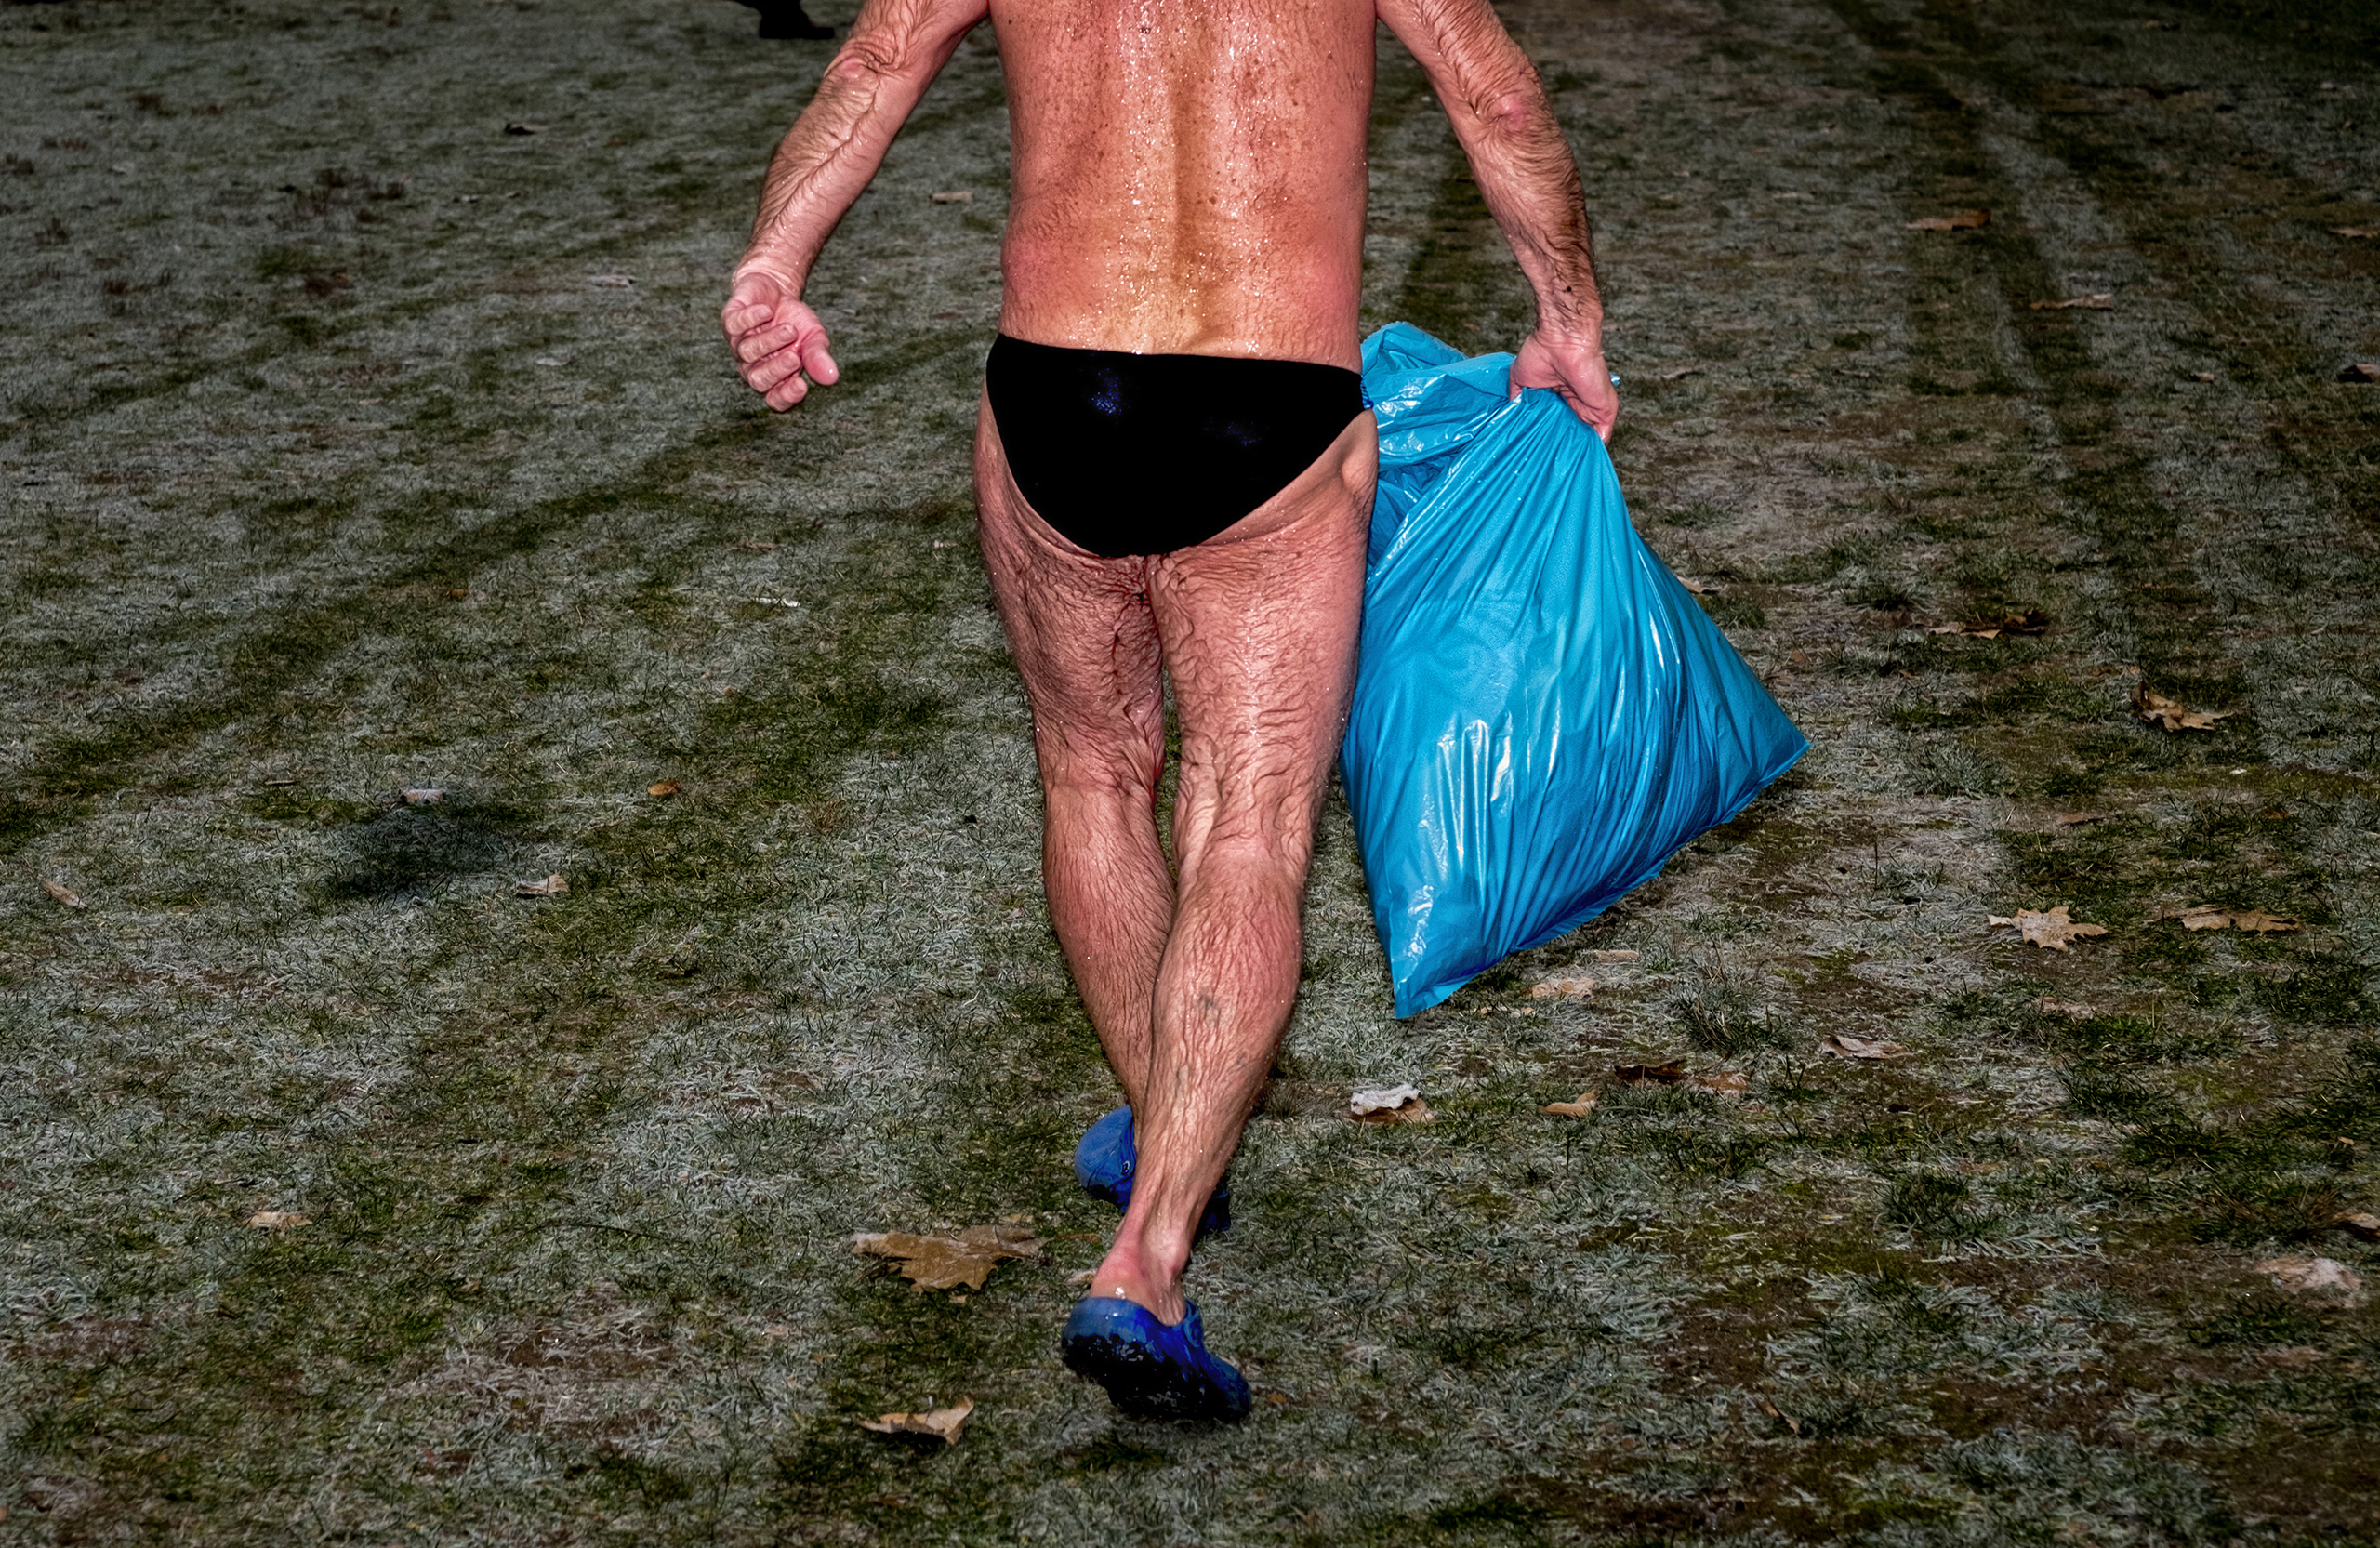 A swimmer holds a plastic bag containing clothes in his hand after completing a race in the Labe River on Dec. 17 2016.